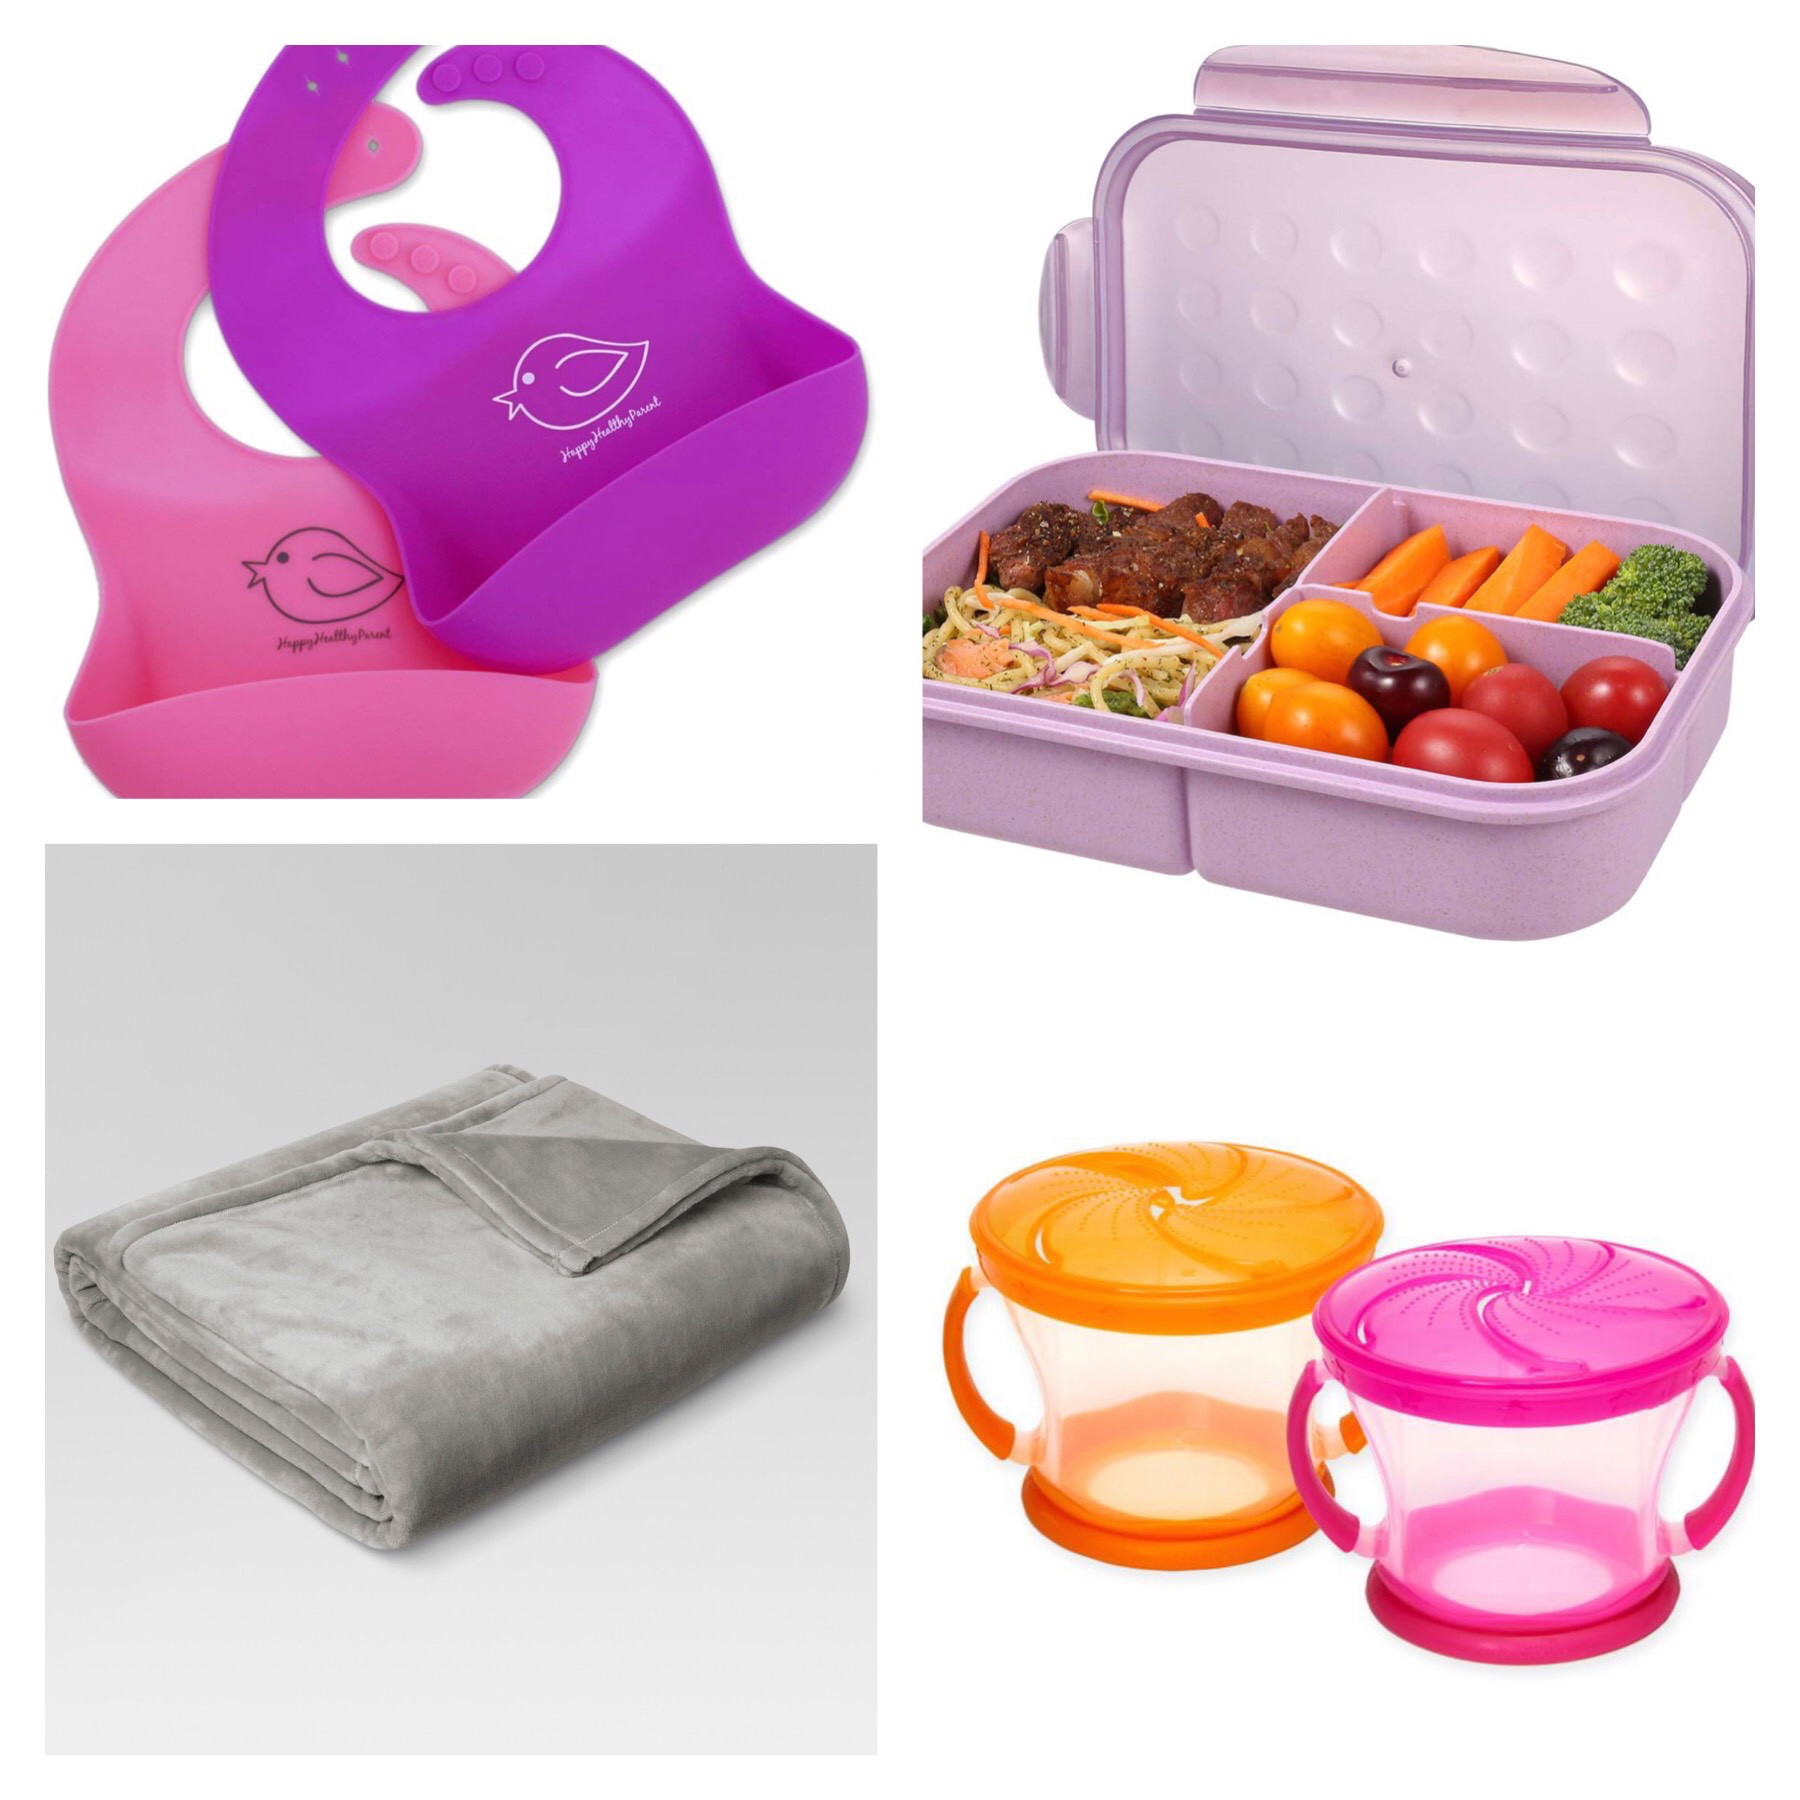 https://www.bedbathandbeyond.com/store/product/munchkin-reg-snack-catcher-reg-9-oz-snack-containers-set-of-2/5219814?skuId=65785058&&mrkgcl=609&mrkgadid=3253336654&enginename=google&mcid=PS_googlepla_nonbrand_kitchenaccessories_local&product_id=65785058&adtype=pla&product_channel=local&adpos=1o3&creative=232742510632&device=m&matchtype=&network=g&gclid=Cj0KCQiAgMPgBRDDARIsAOh3uyLsDYFs6JD9iwDkL_0eepWCHYA17uce4tMfuAJhVviXqf4CcbpKkpAaAjvrEALw_wcB&gclsrc=aw.ds    https://www.amazon.com/gp/aw/d/B0155VV6TC?psc=1&ref=yo_pop_mb_pd_title    https://www.amazon.com/gp/aw/d/B07DLDKCLH?psc=1&ref=yo_pop_mb_pd_title    https://www.target.com/p/microplush-bed-blanket-threshold-153/-/A-50950586?preselect=50928638#lnk=sametab   *I do not own the rights to the above images.